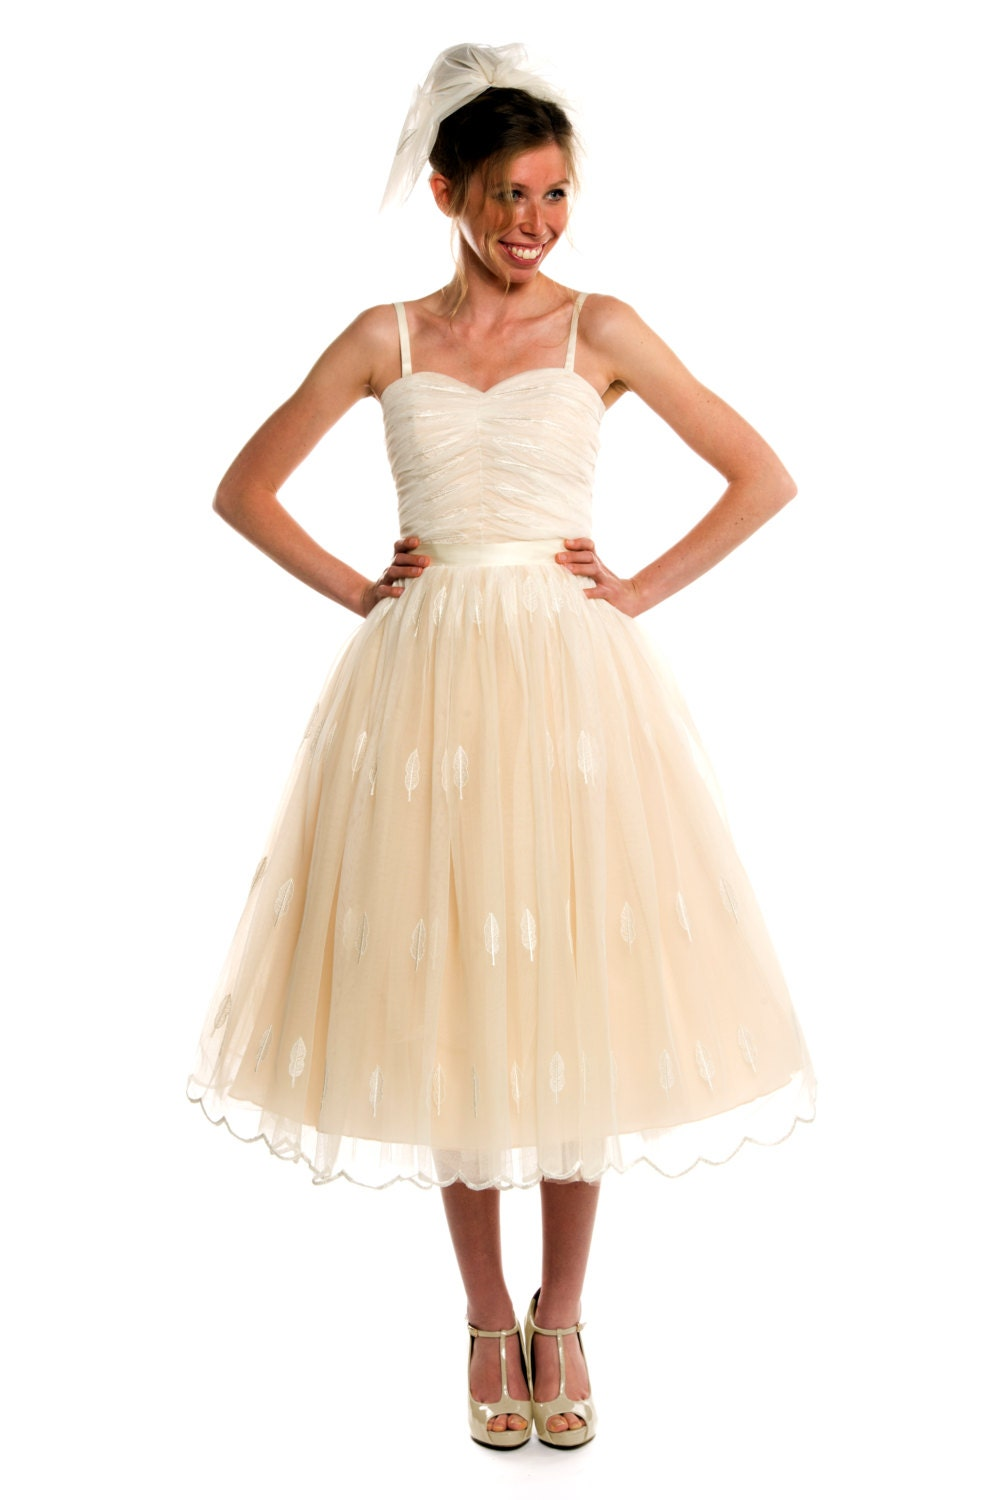 Wedding gown alterations price list gowns ideas for Wedding dress alterations cost david s bridal